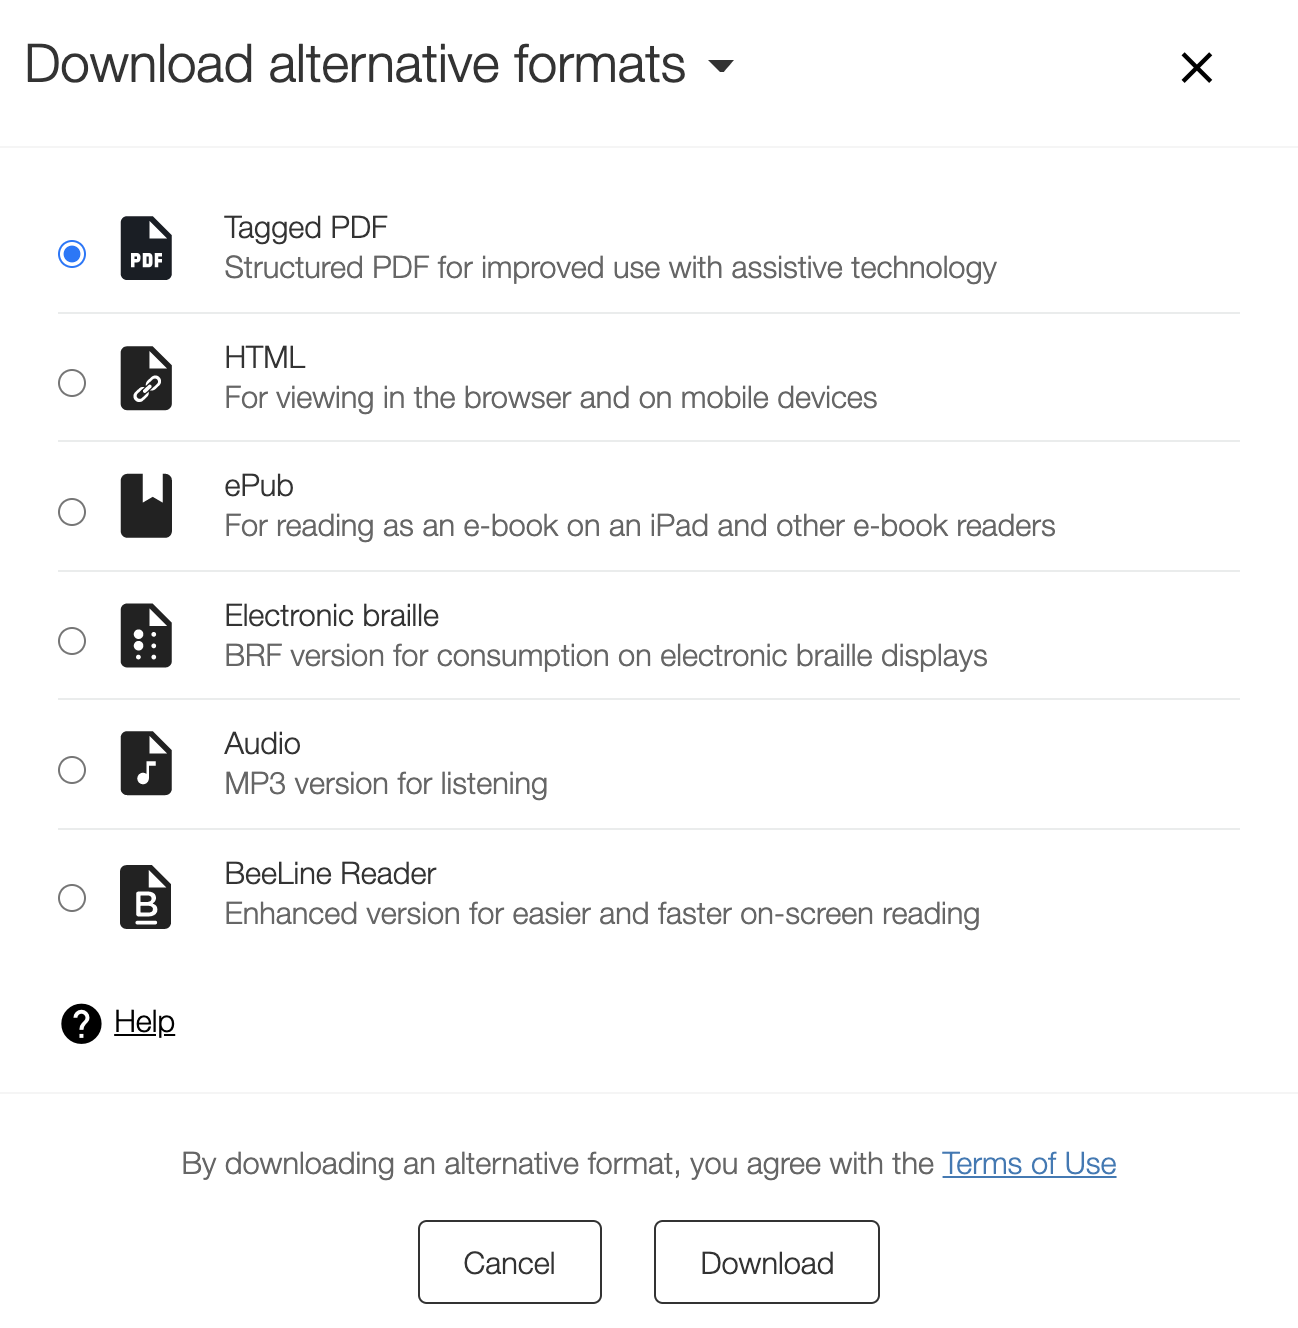 Ally's Download Alternative formats dialog